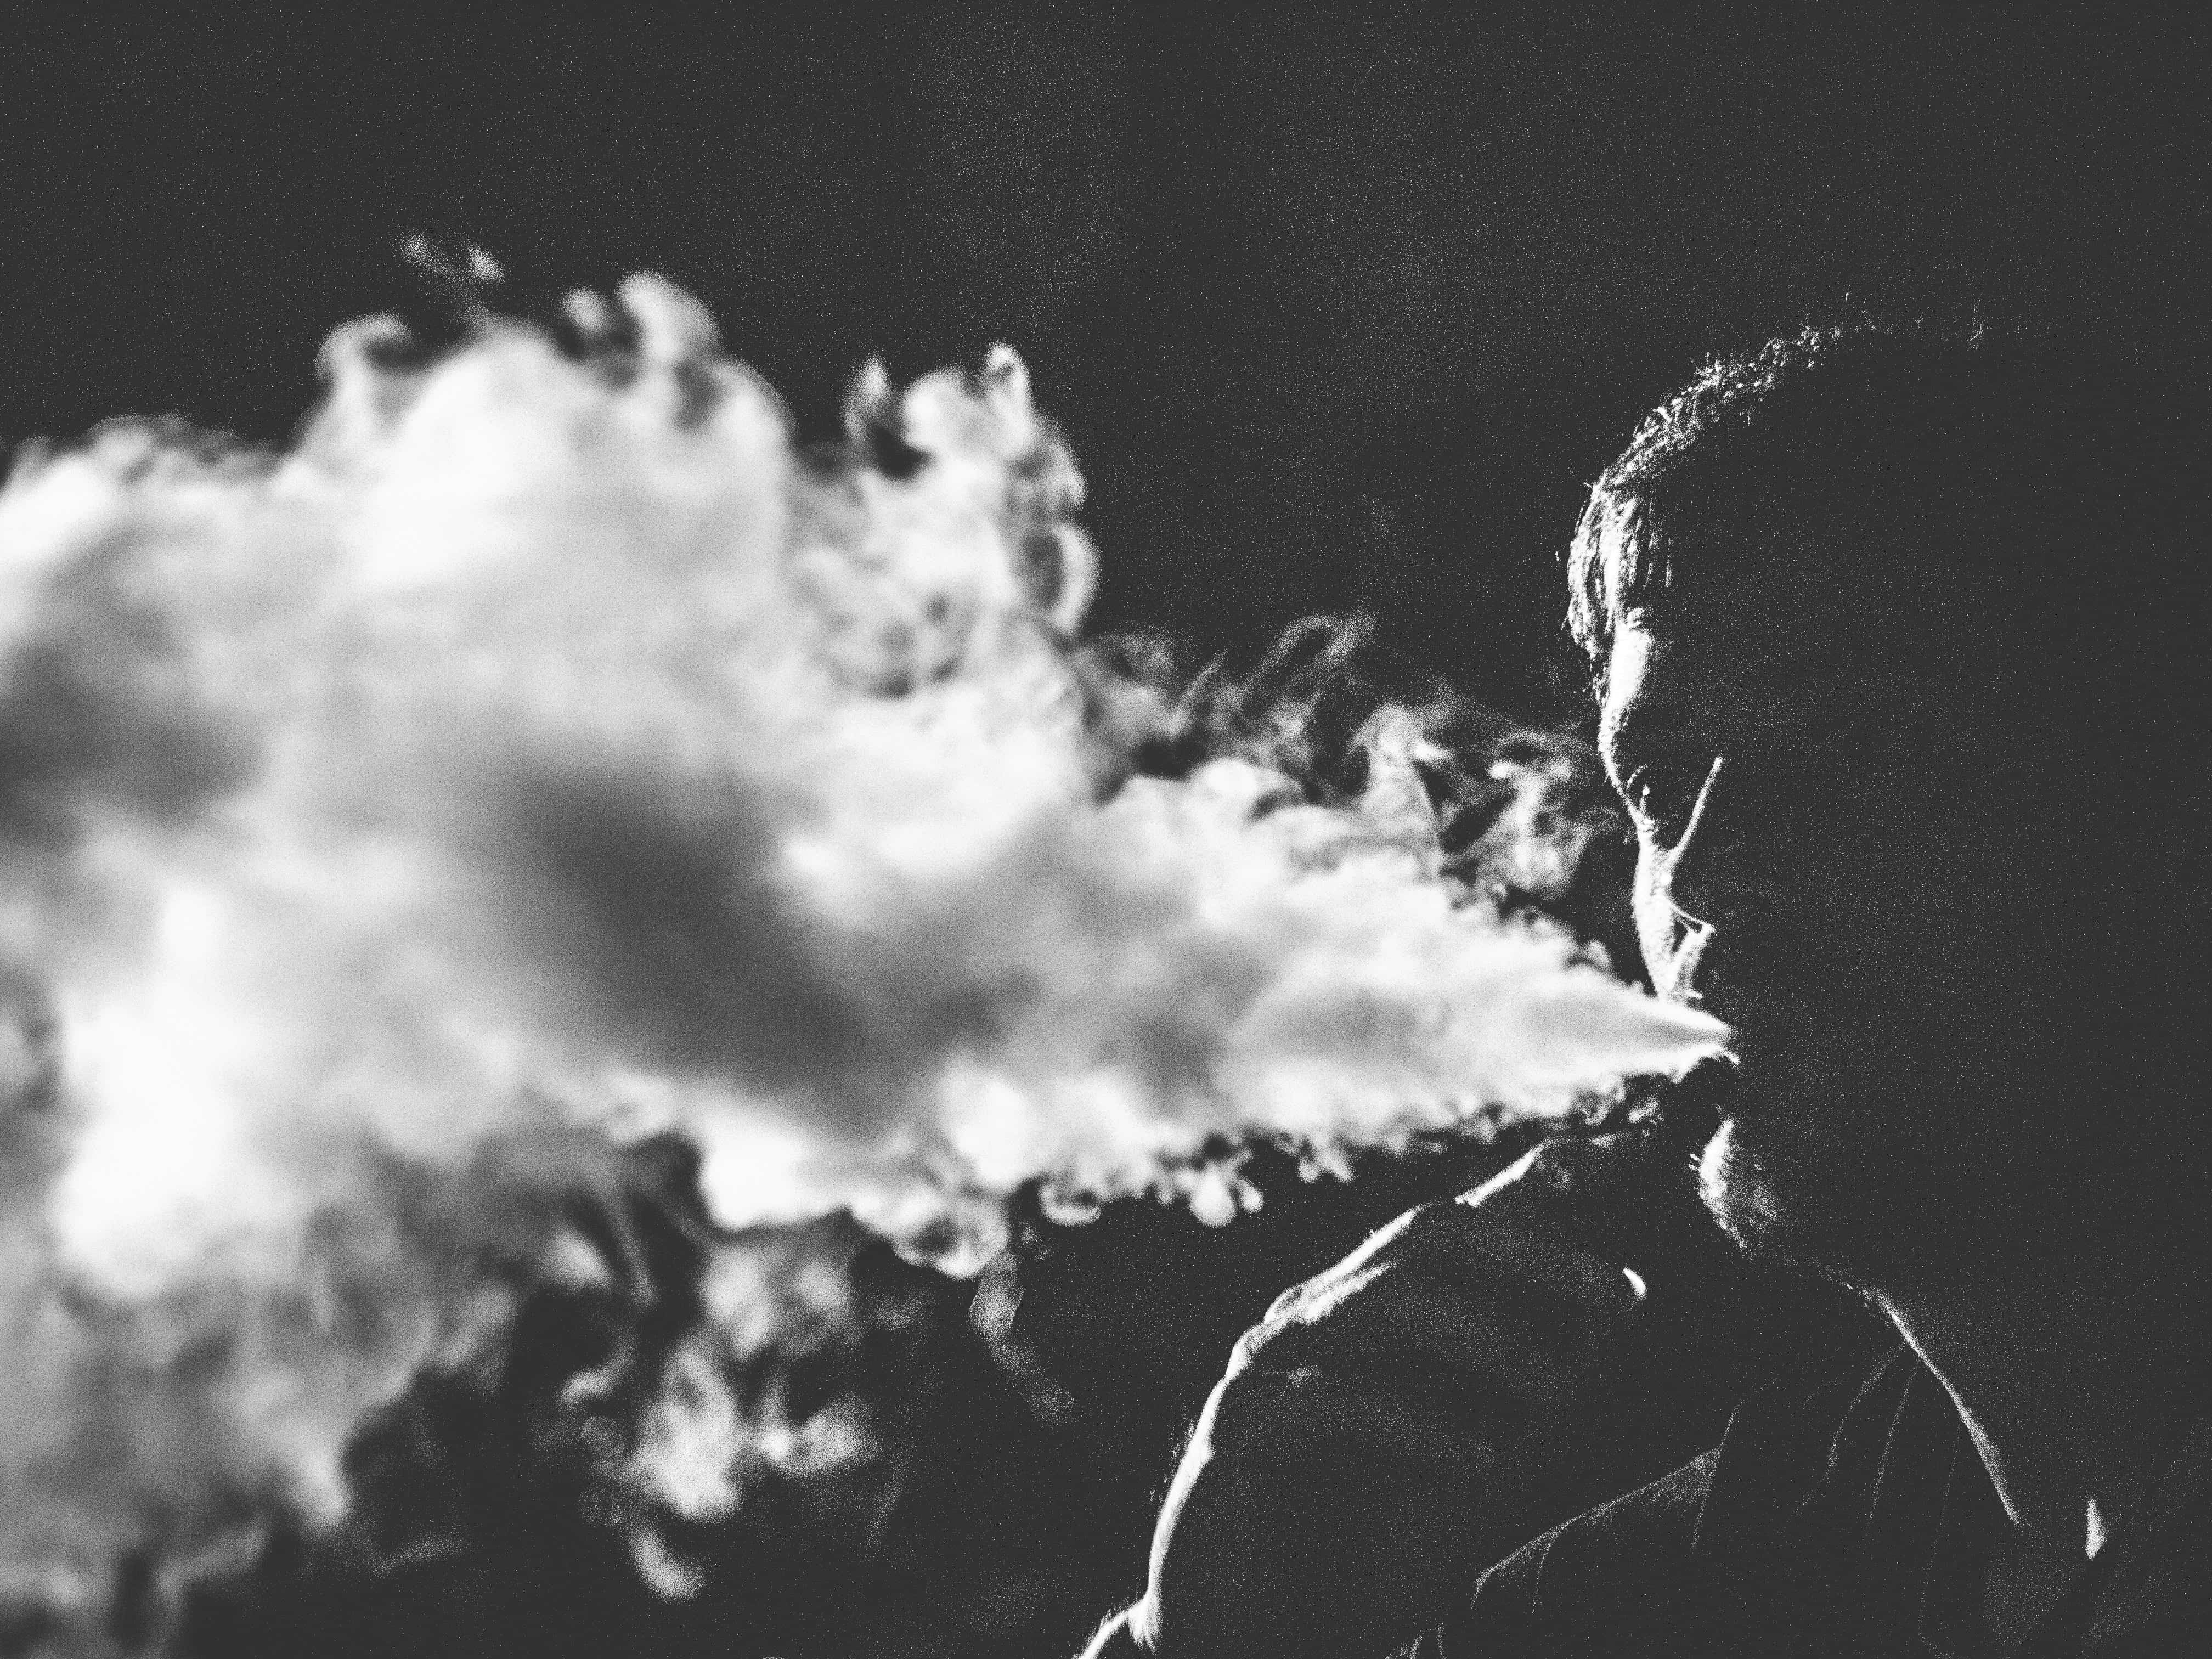 LA Vape Companies Will Pay Fines for Selling to Minors